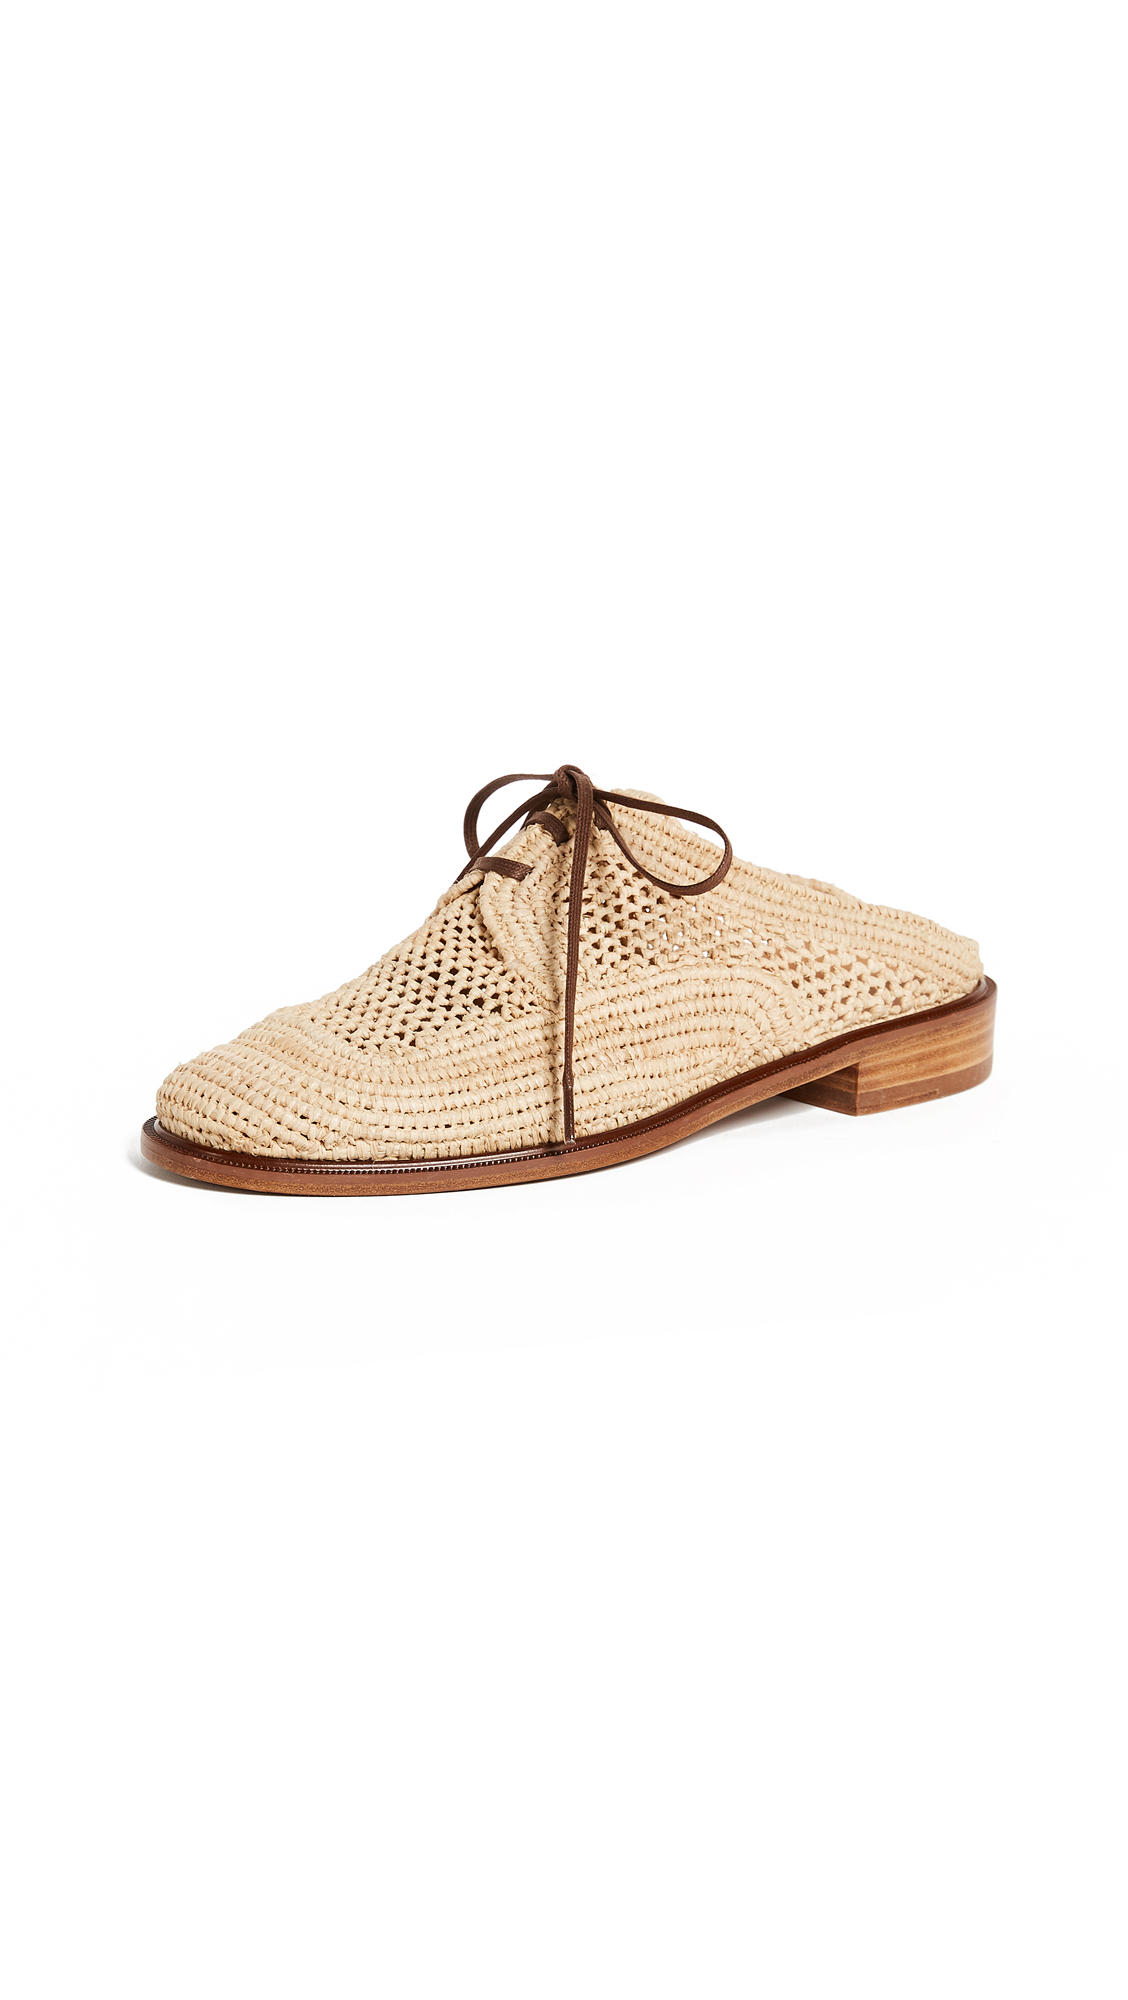 Robert Clergerie Jaly Oxford Mules - Natural/Gold